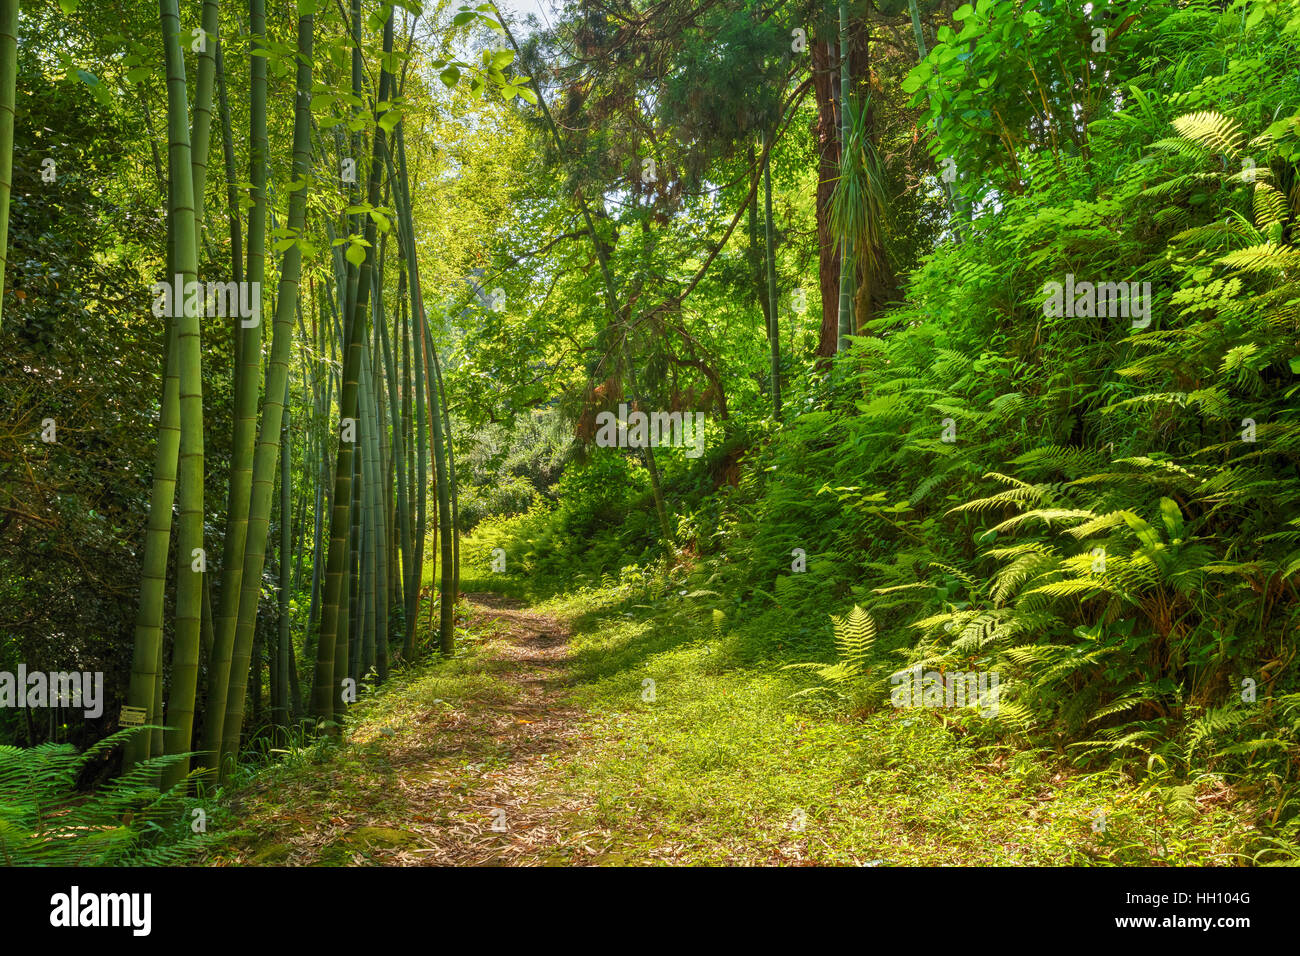 Beautiful Road Lane Path Way Through Summer Bamboo Forest